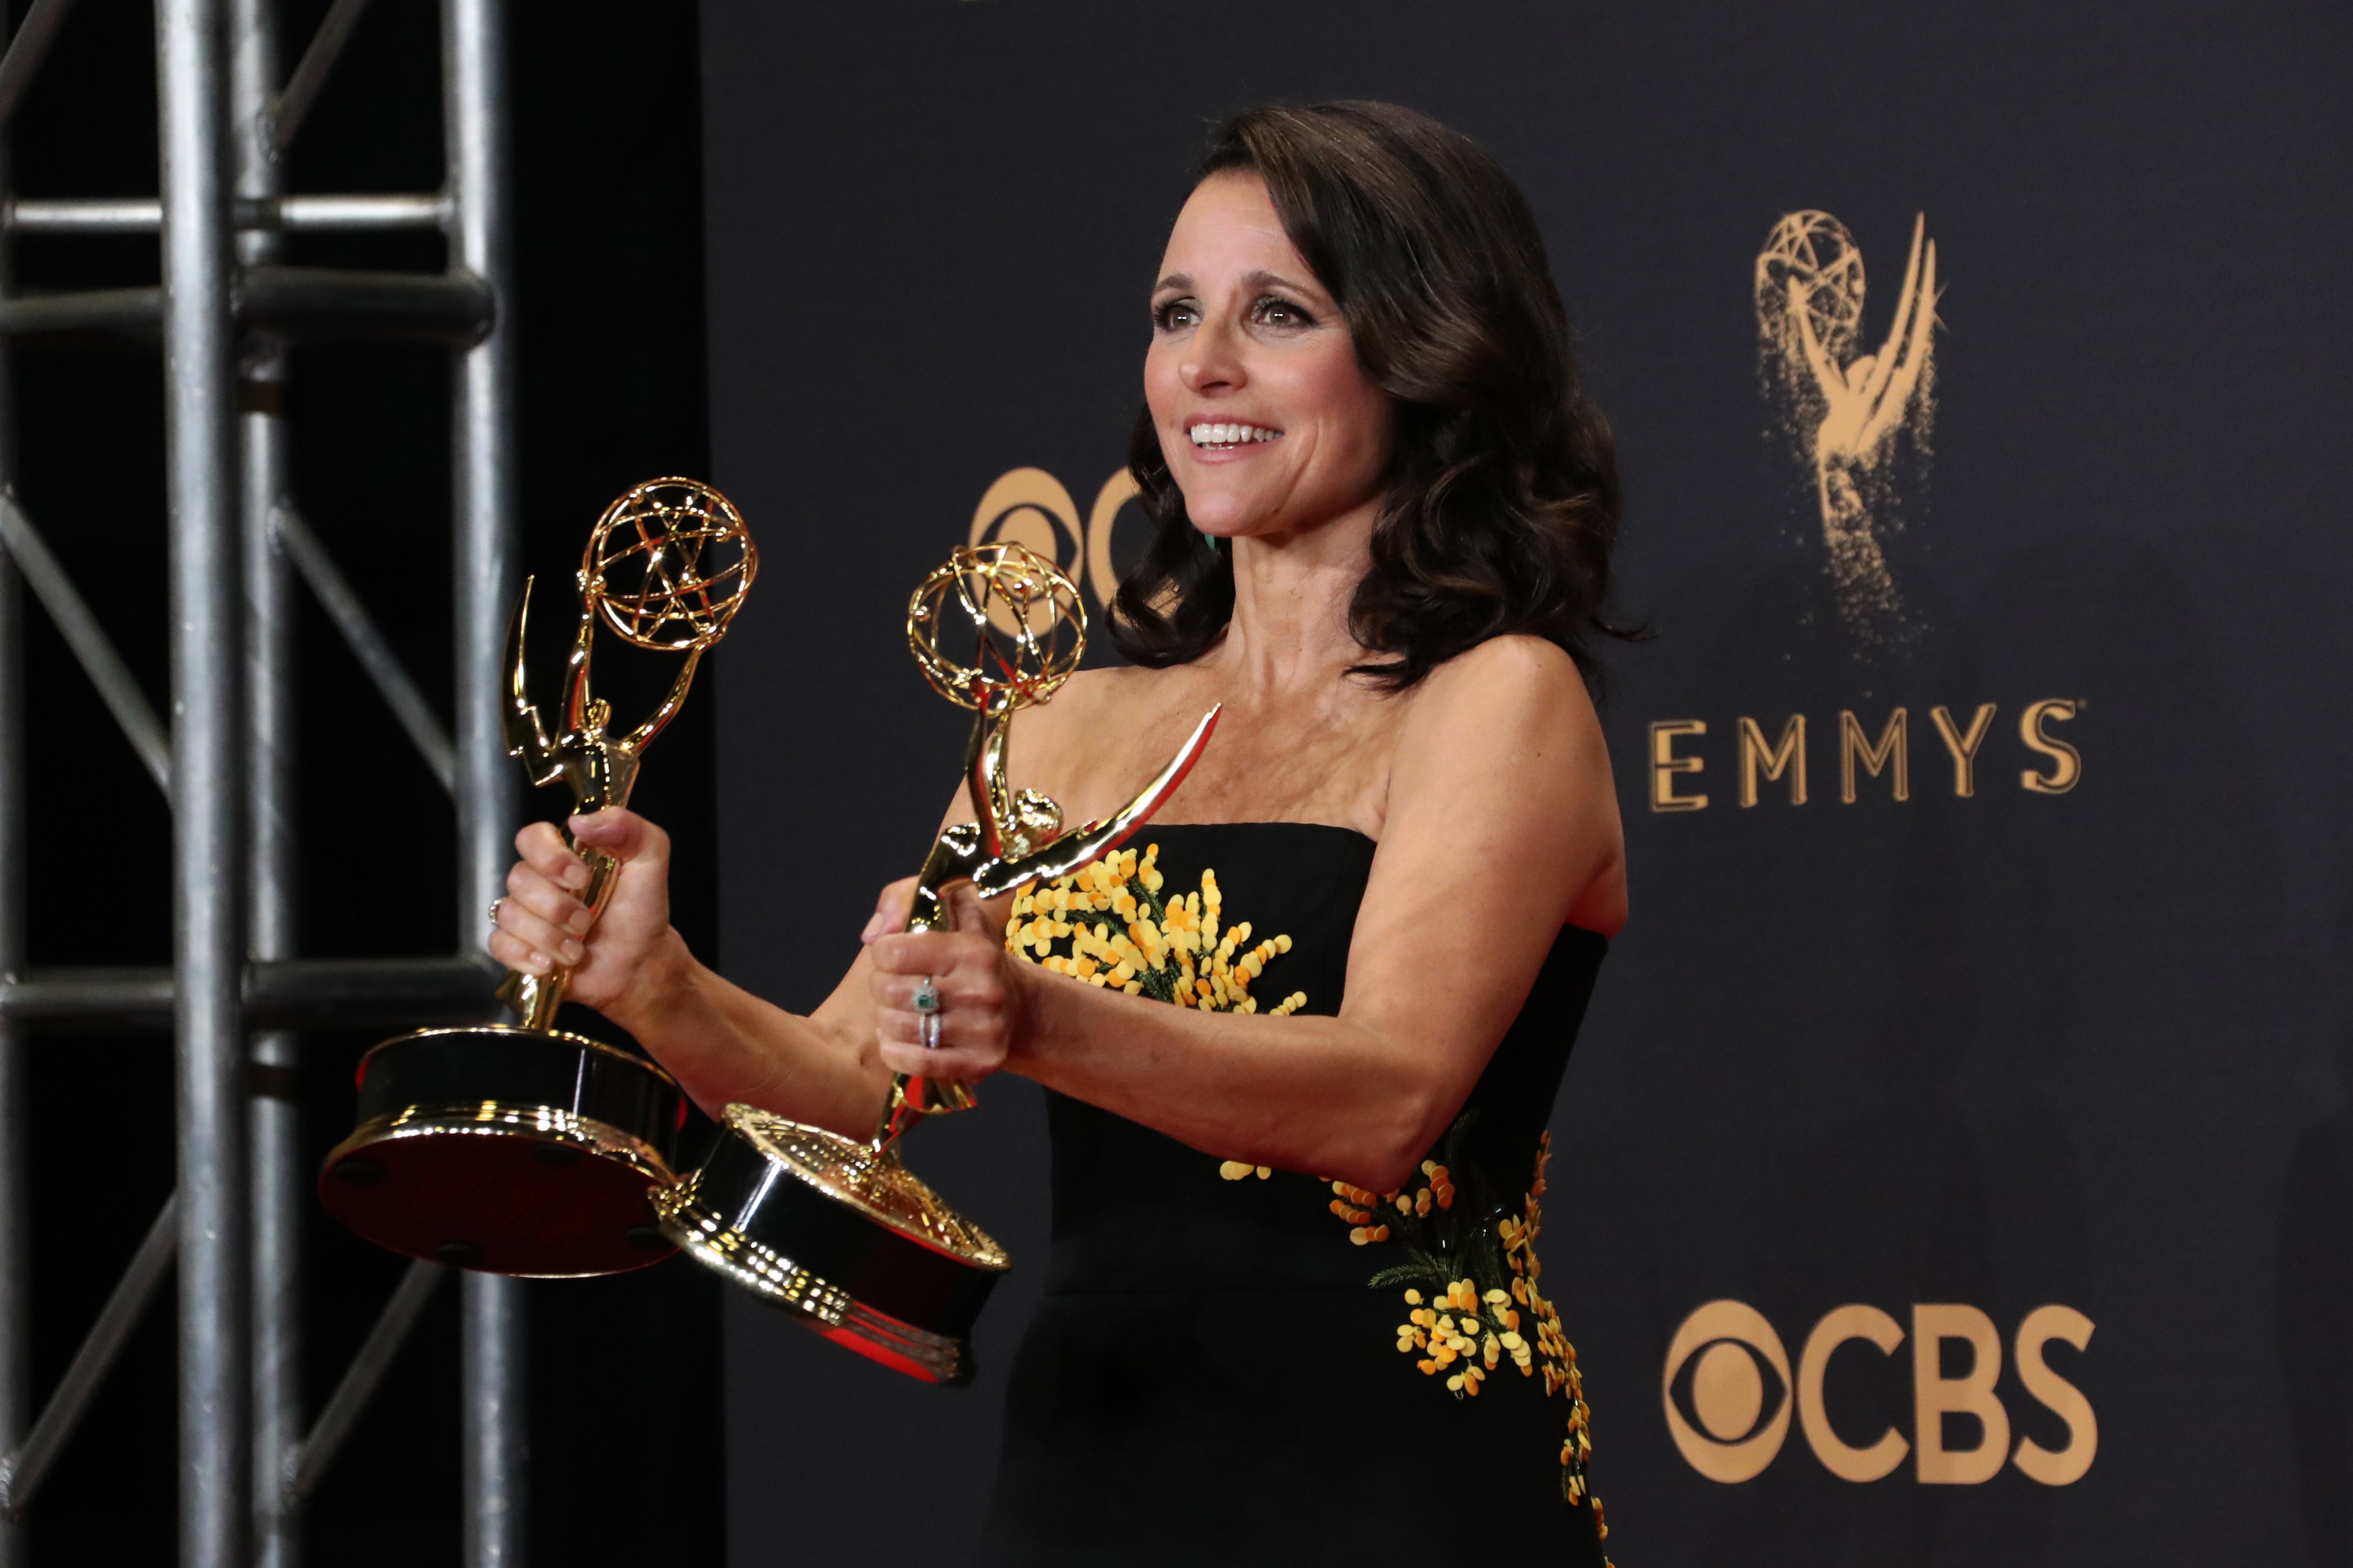 Julia Louis-Dreyfus - Outstanding Actress in a Comedy Series - Veep69th Primetime Emmy Awards, Press Room, Los Angeles, USA - 17 Sep 2017